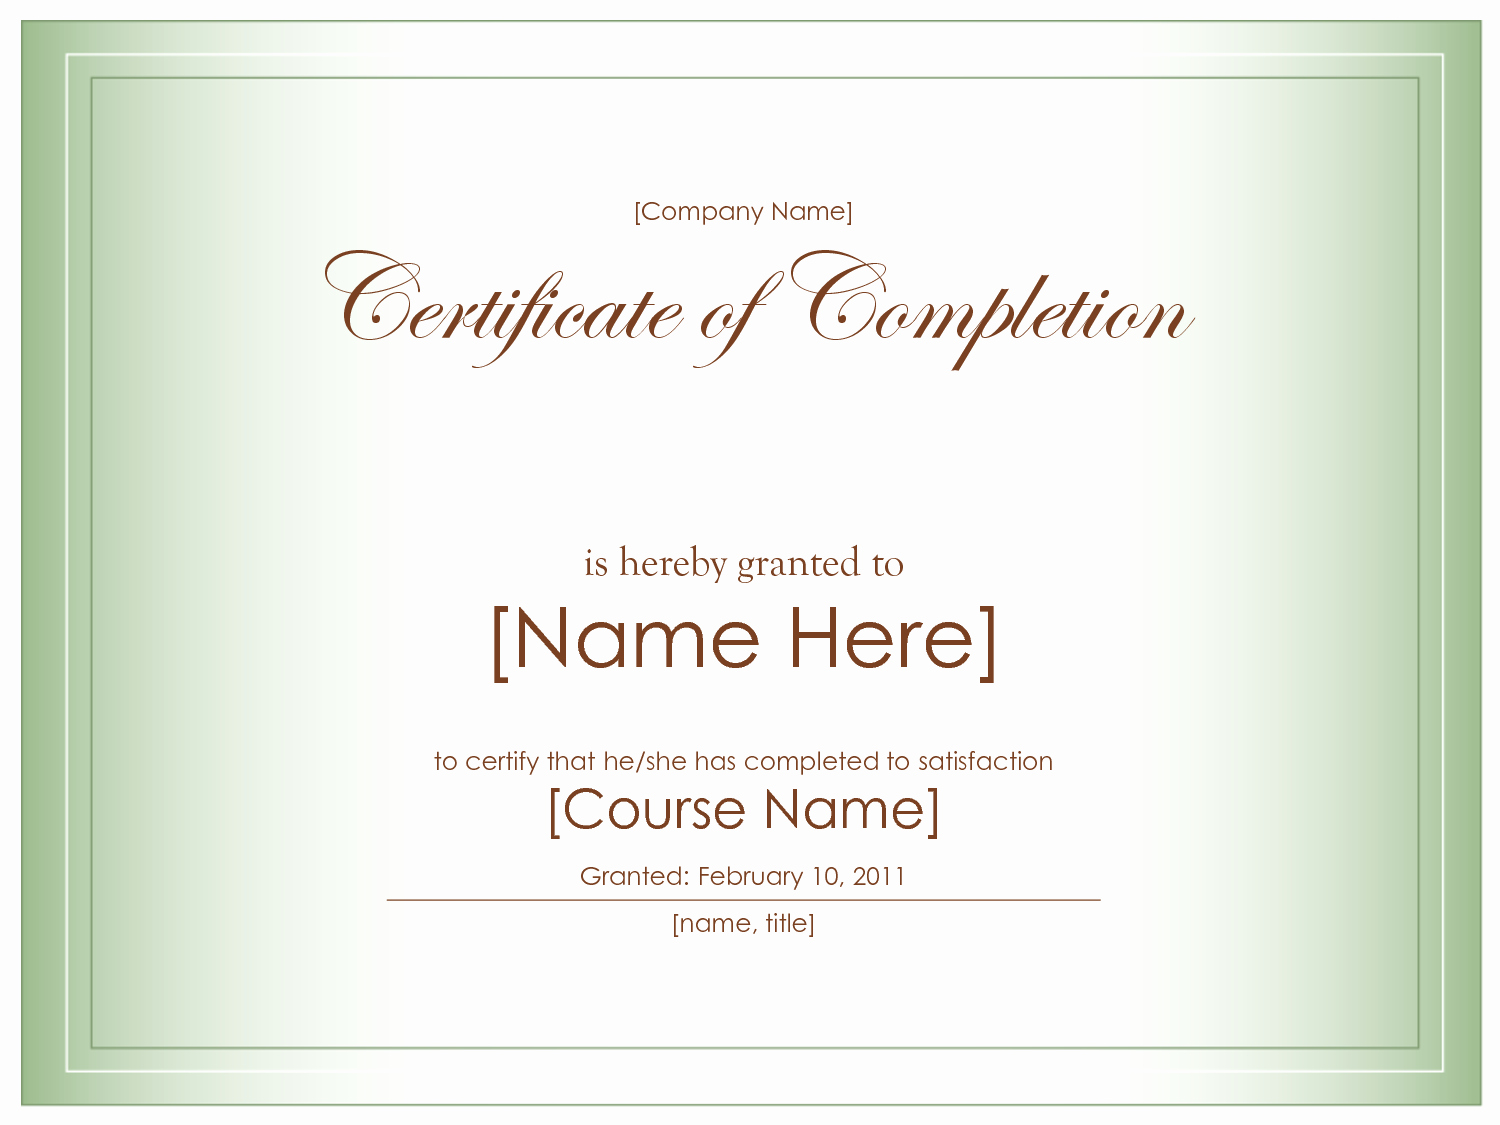 Templates for Certificates Of Completion Elegant Blank Certificate Templates to Print